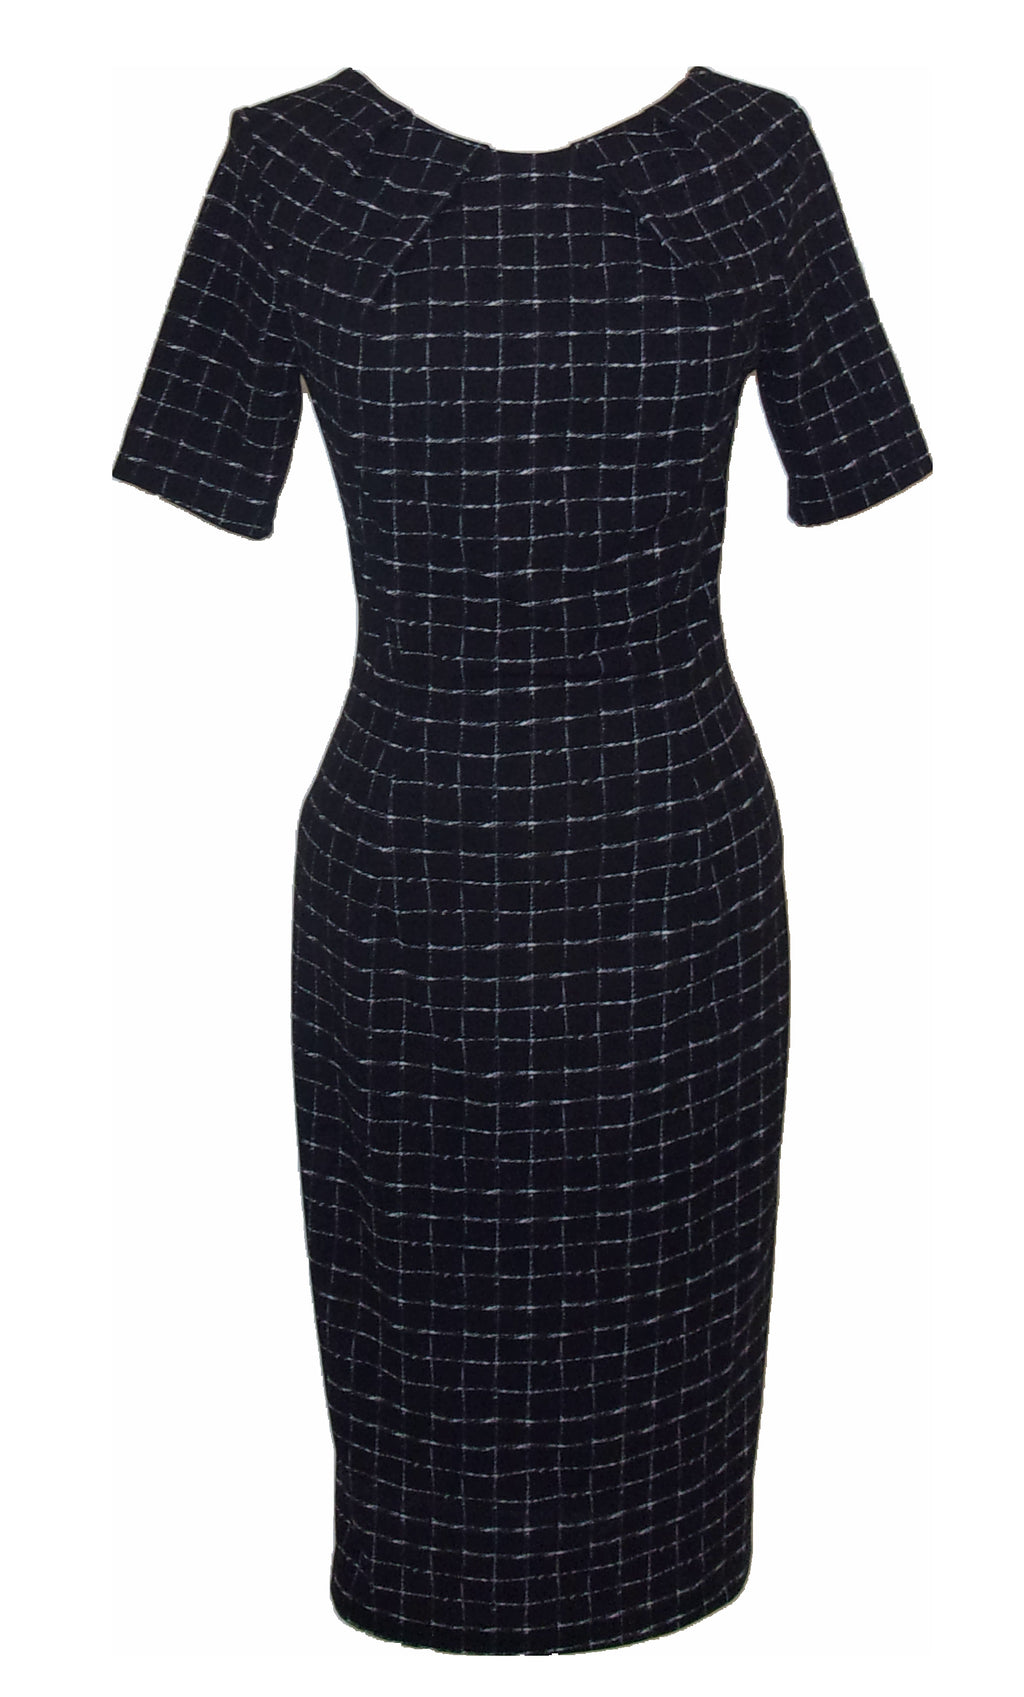 JODY Patterned Sheath Dress